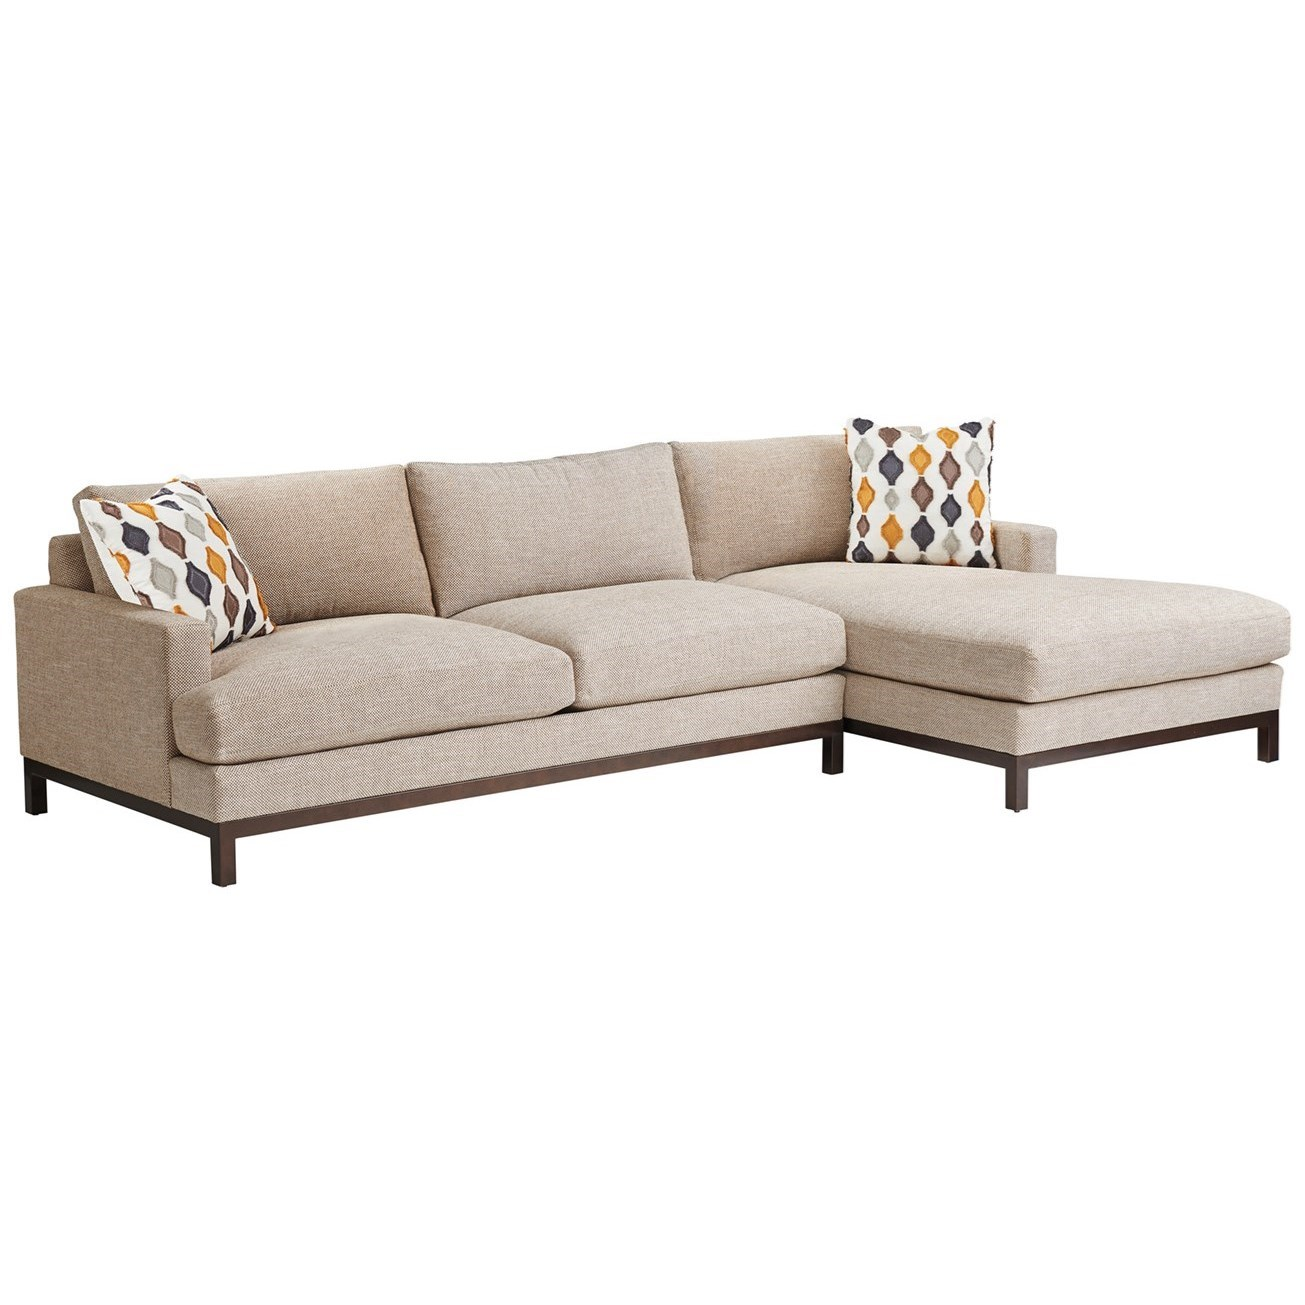 Barclay Butera Upholstery 2-Pc Sectional w/ Bronze Base & RAF Chaise by Barclay Butera at Baer's Furniture